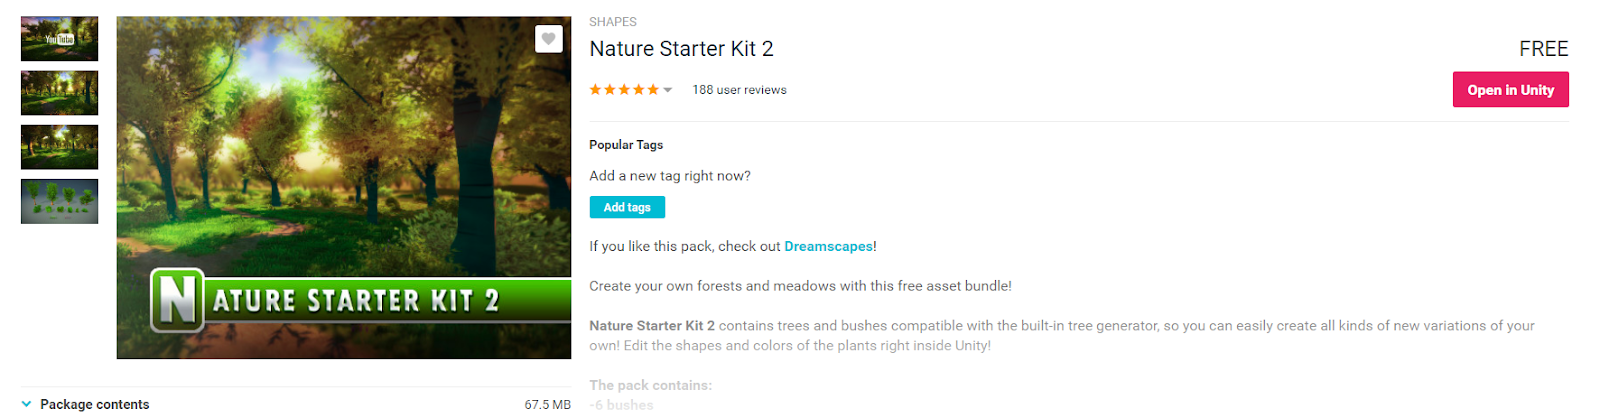 Build a Forest Tree by Tree with the Nature Starter Kit 2 on Unity